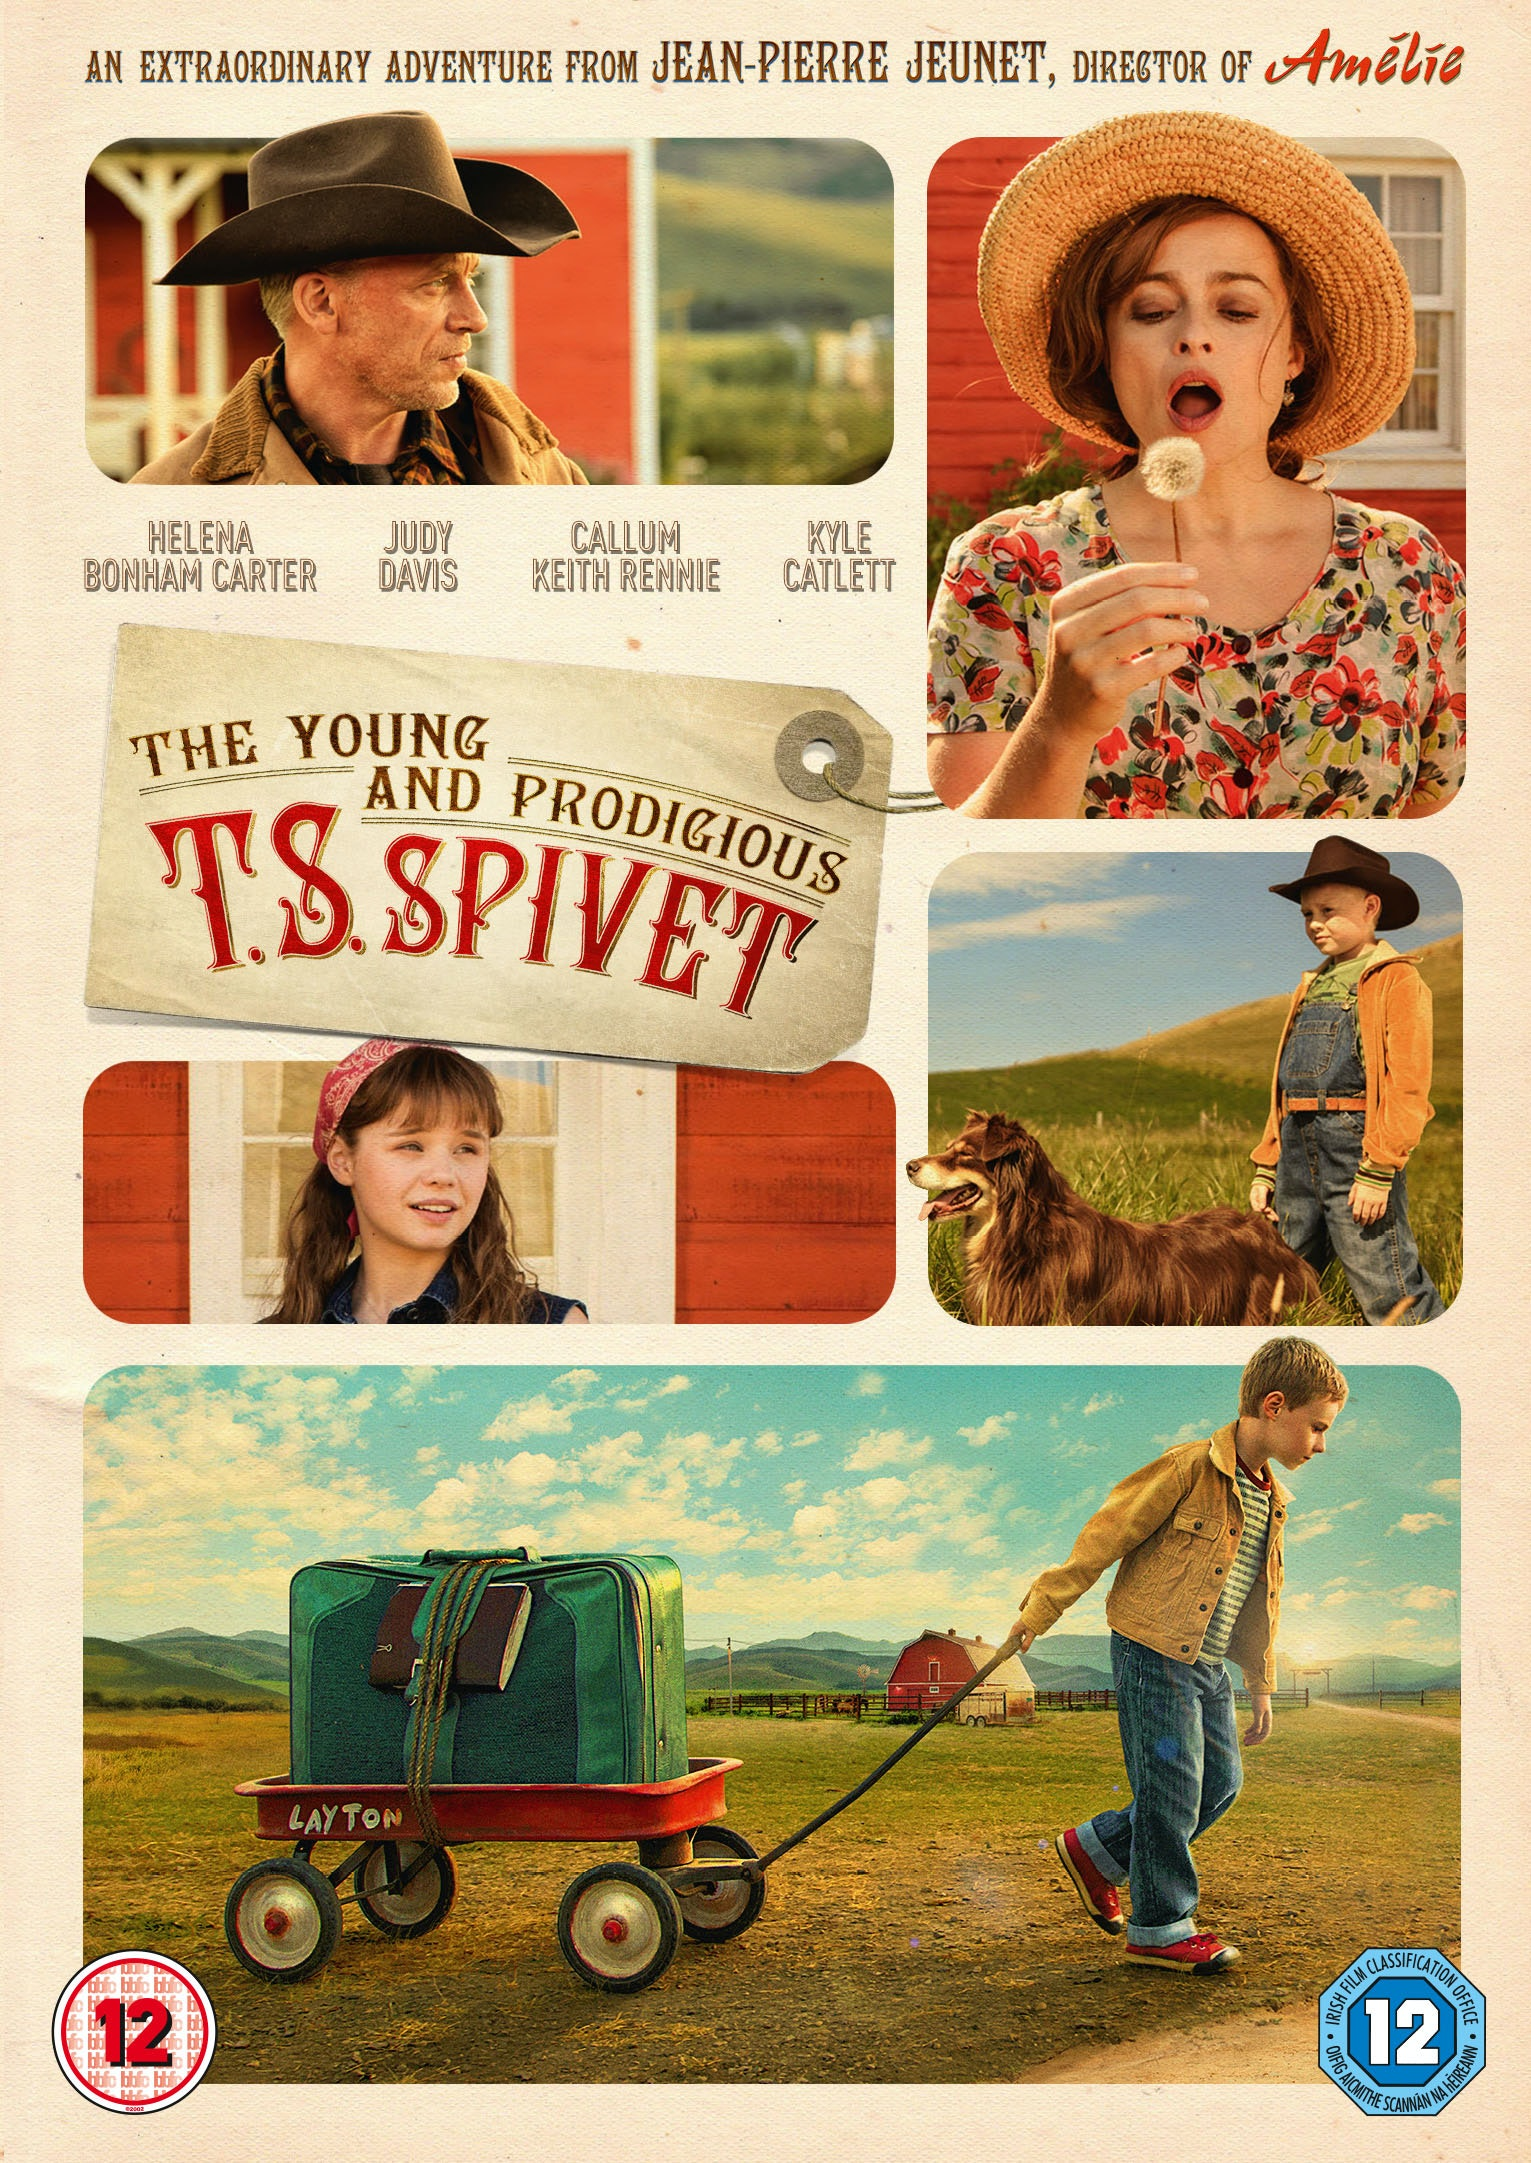 The Young and Prodigious T.S Spivet  sweepstakes